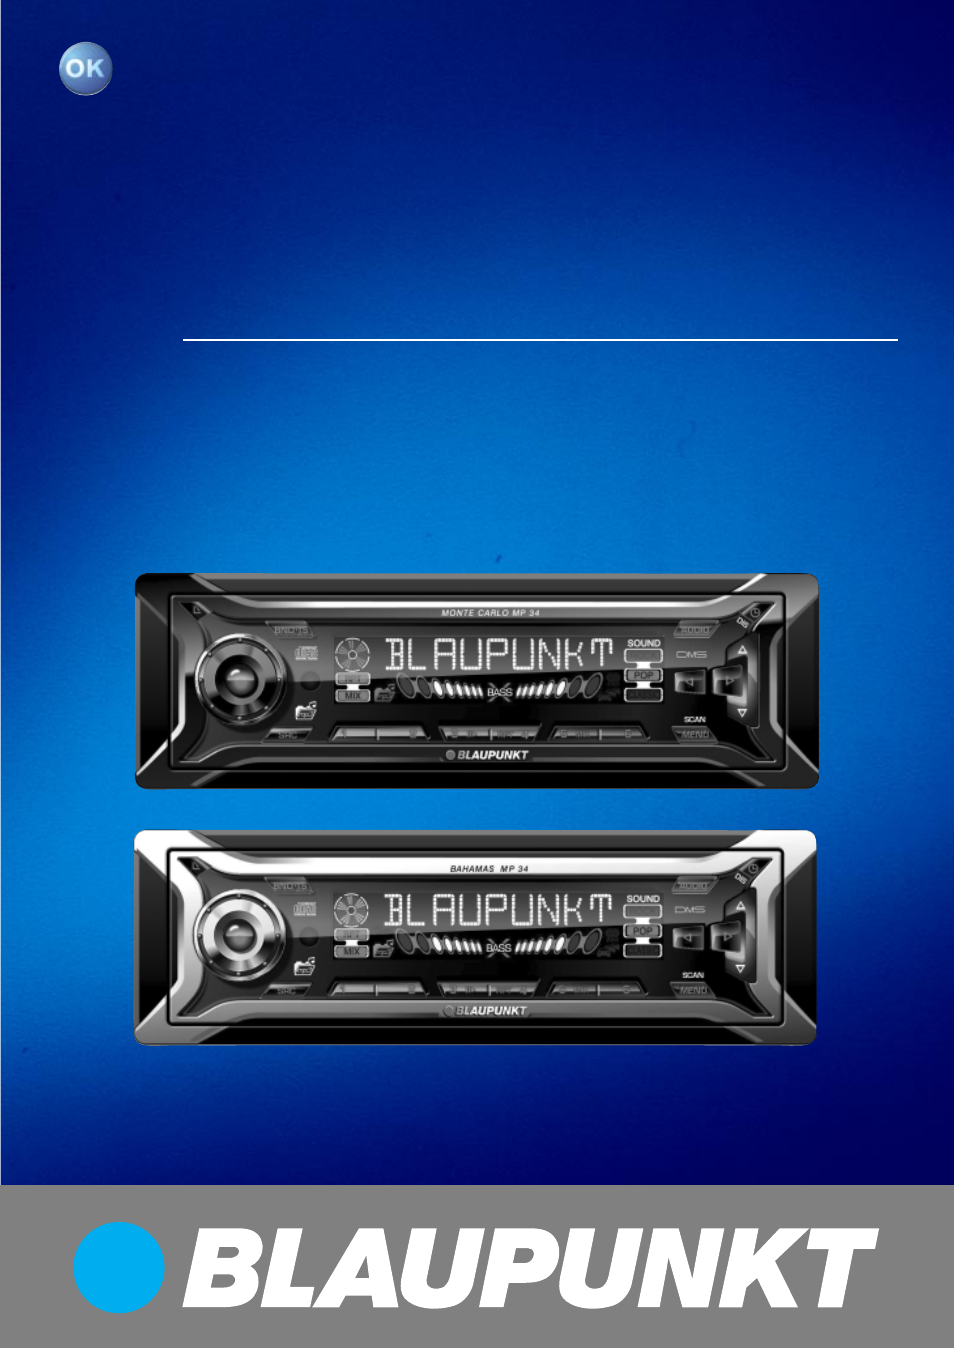 Blaupunkt Bahamas MP34 User Manual | 98 pages | Also for: Monte Carlo MP34